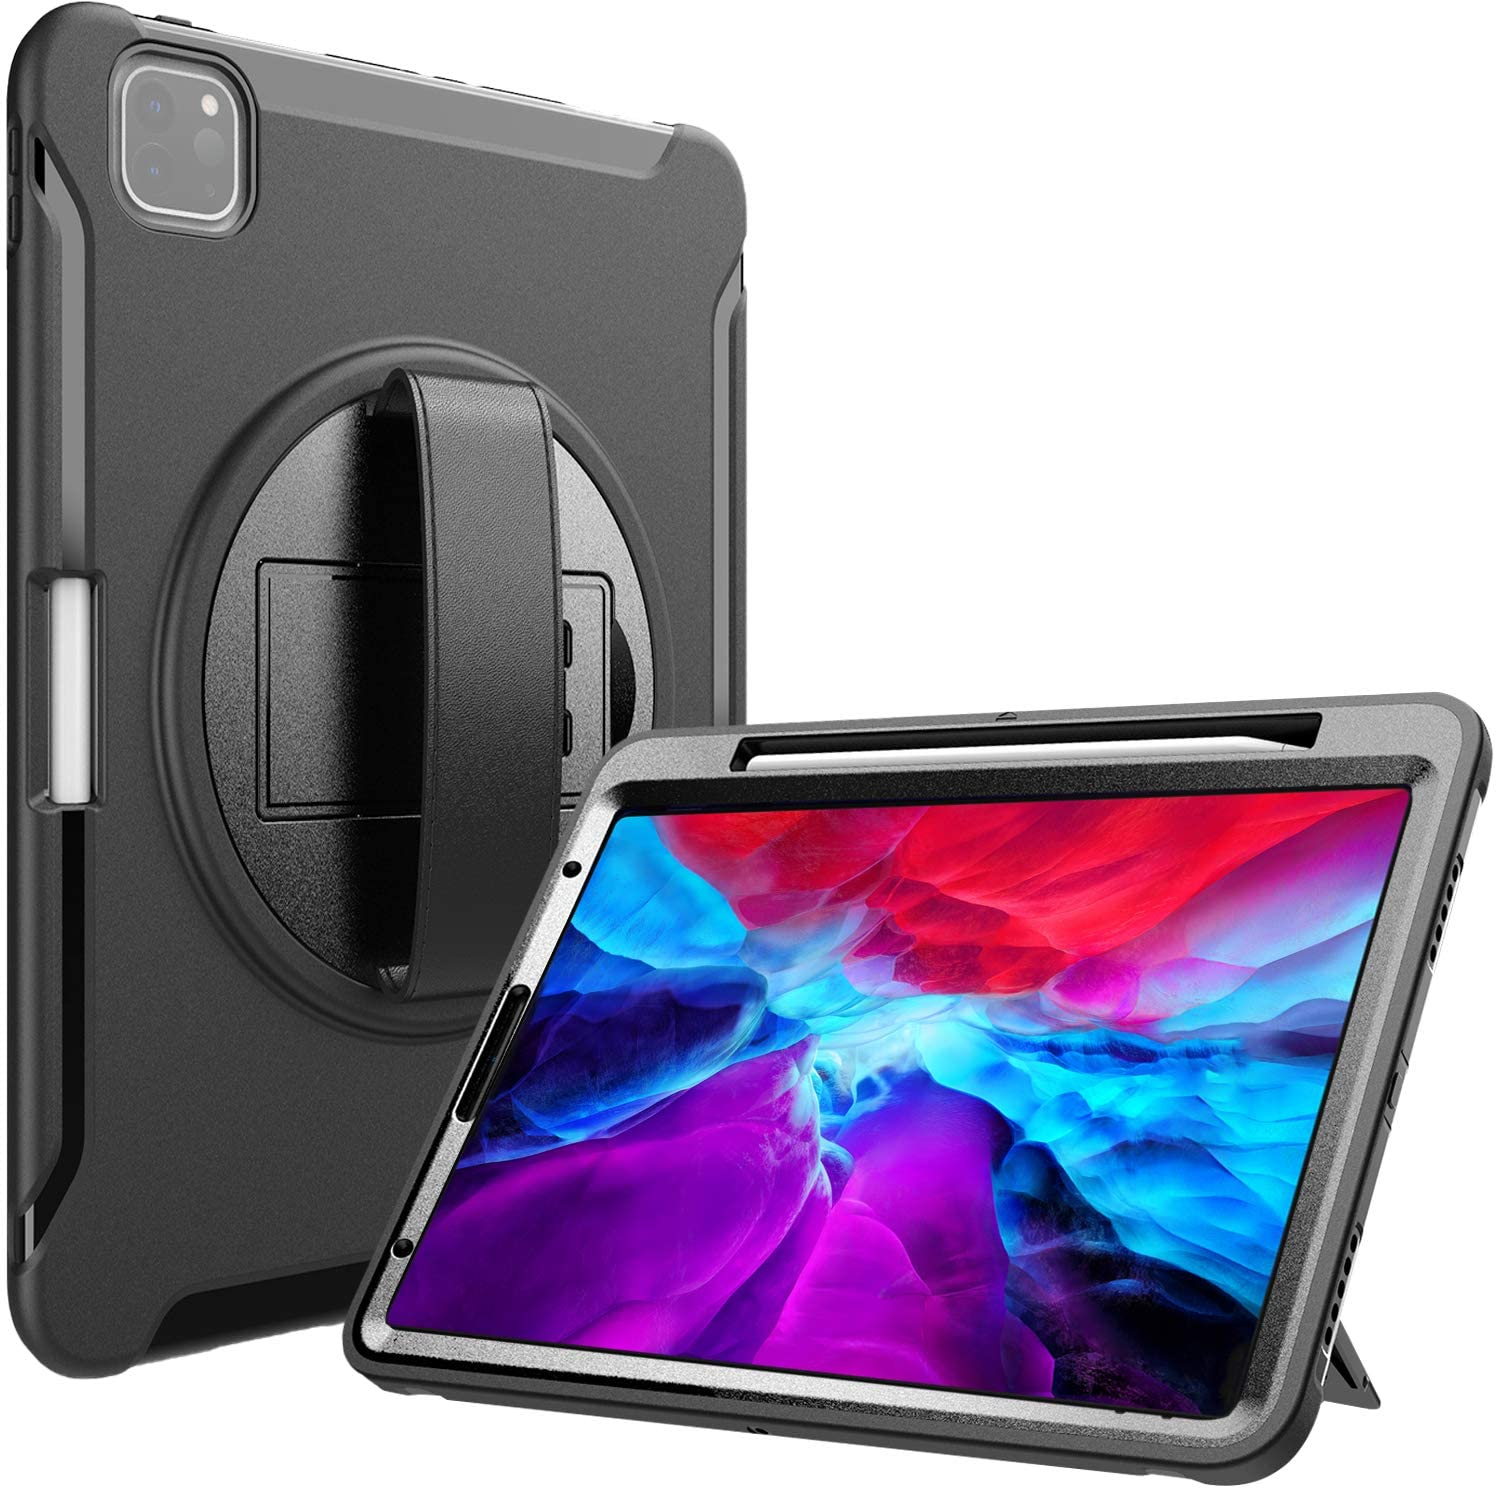 iPad Pro 12.9 Ruggued Case 2020 & 2018 [Support Apple Pencil 2 Charging], Heavy Duty Shockproof Rotatable Kickstand Prot